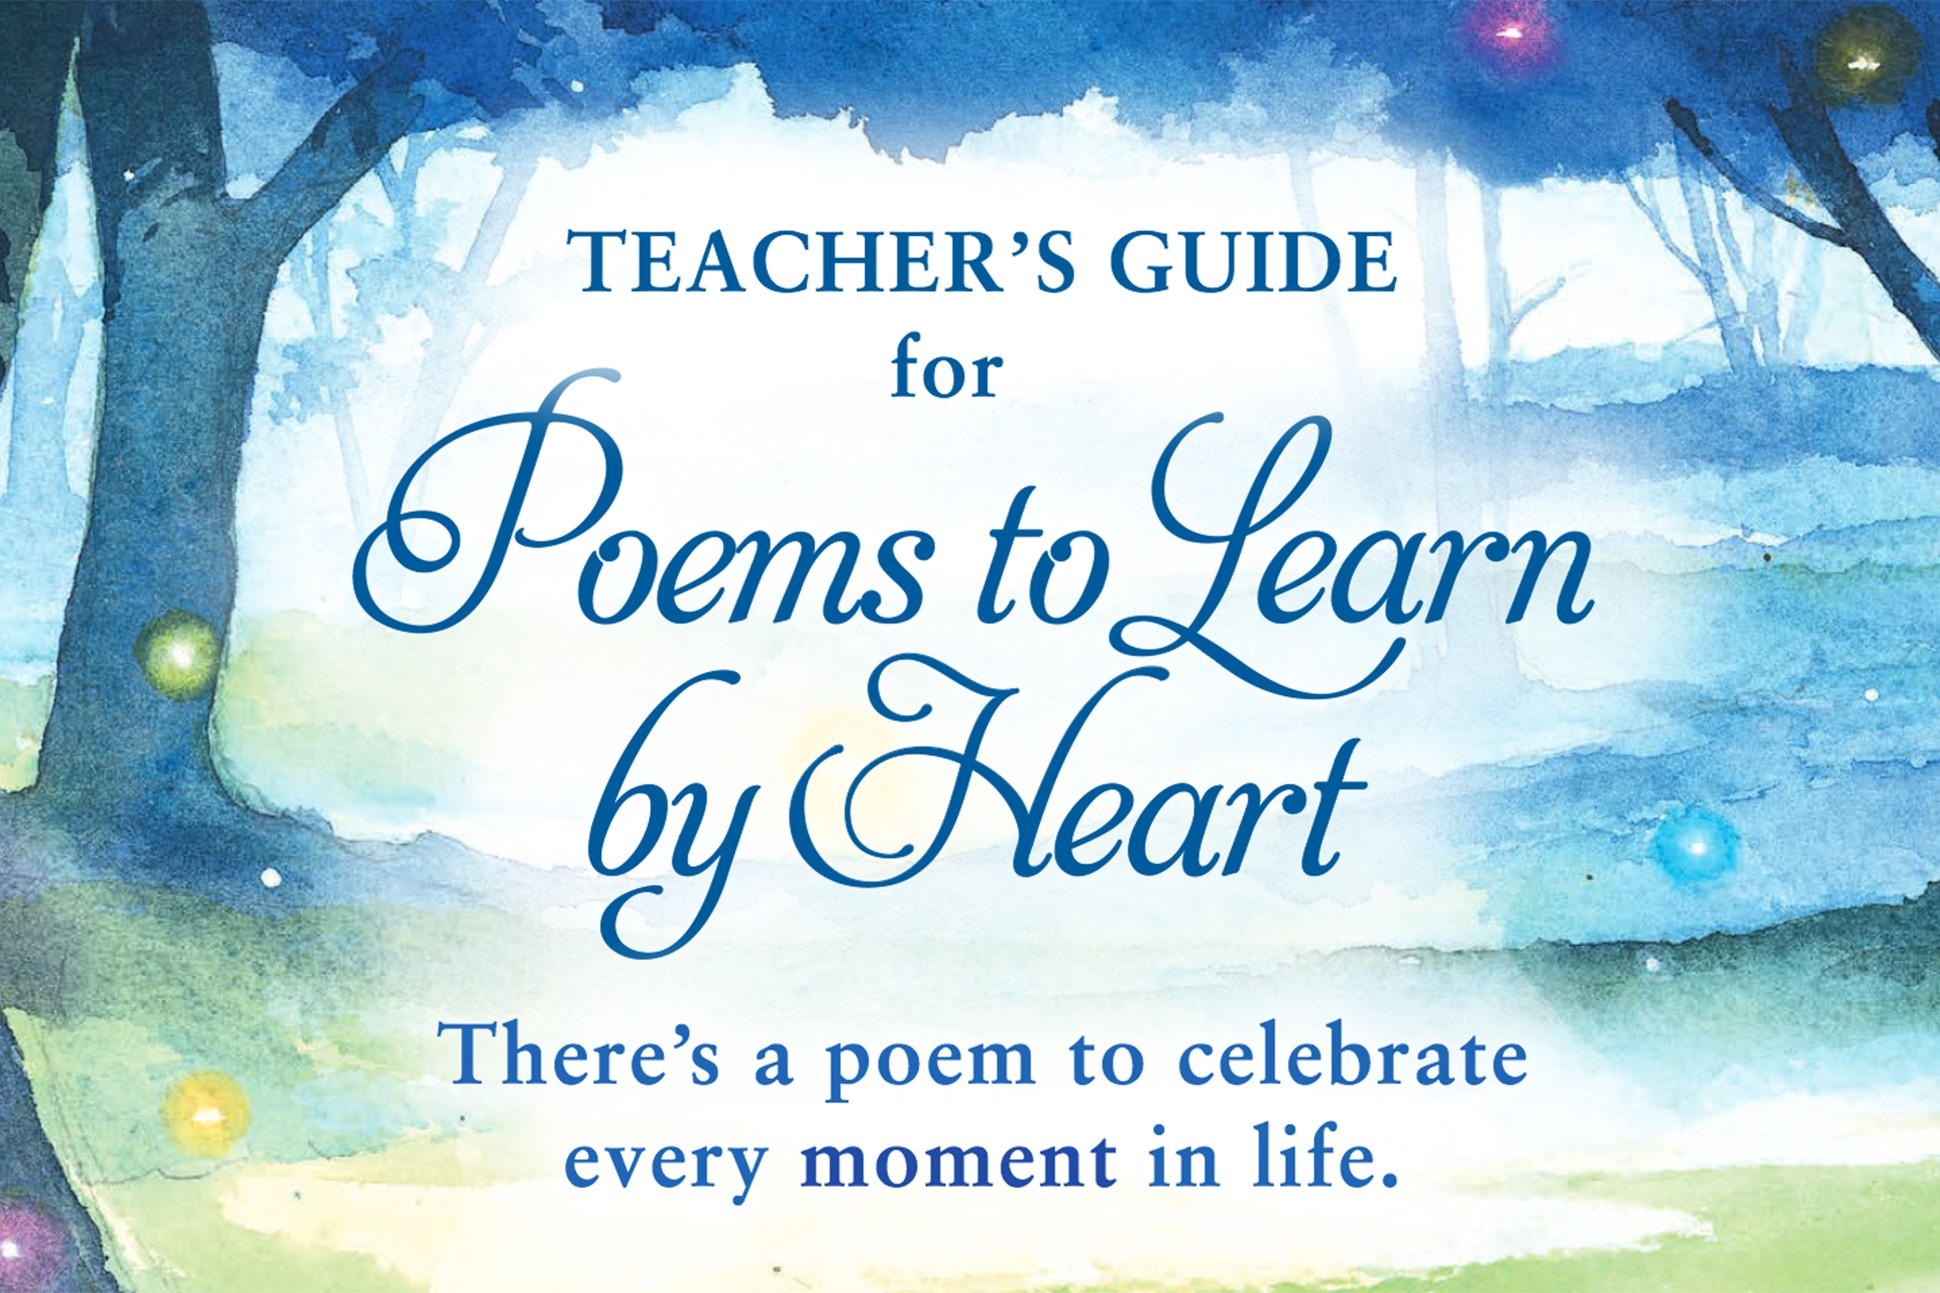 Poem to learn